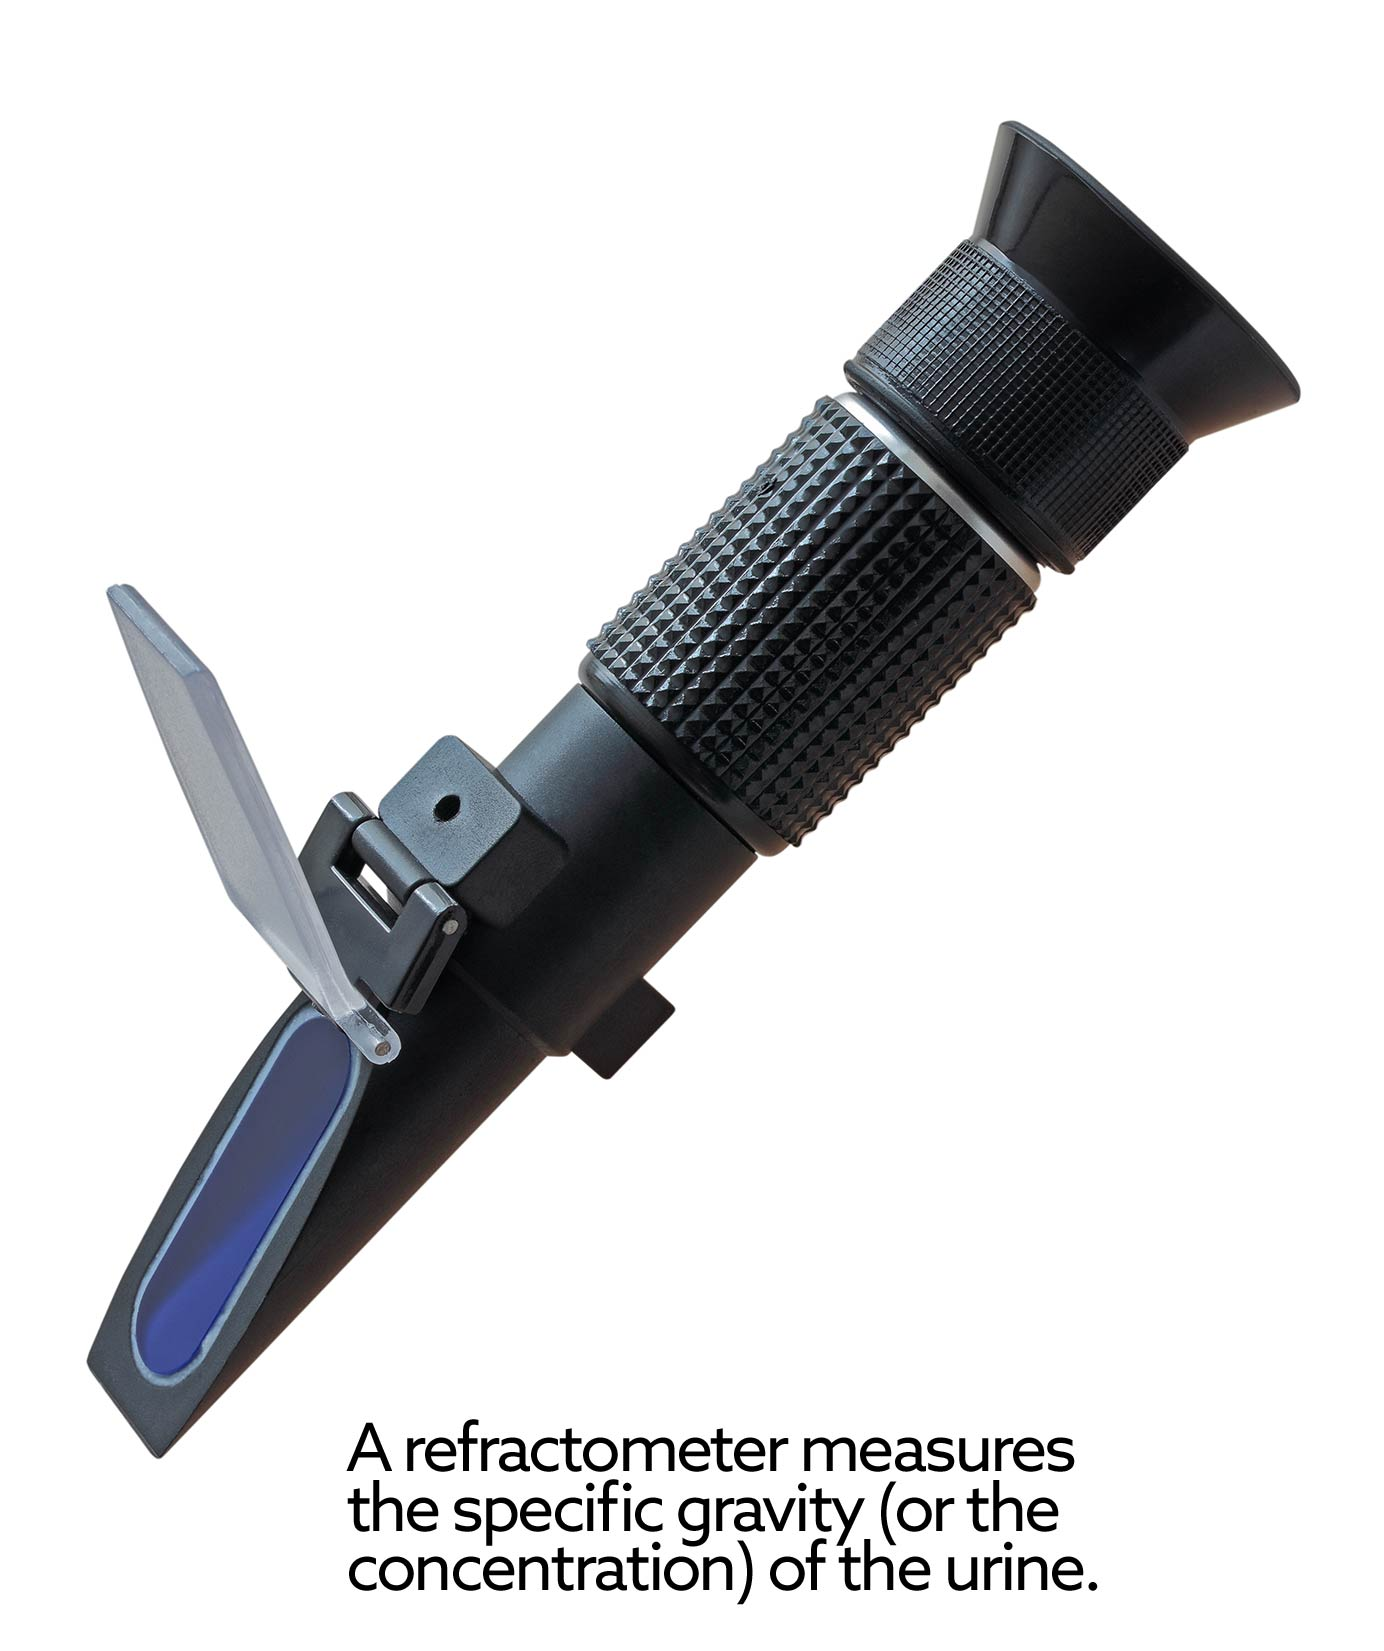 refractometer_with_text